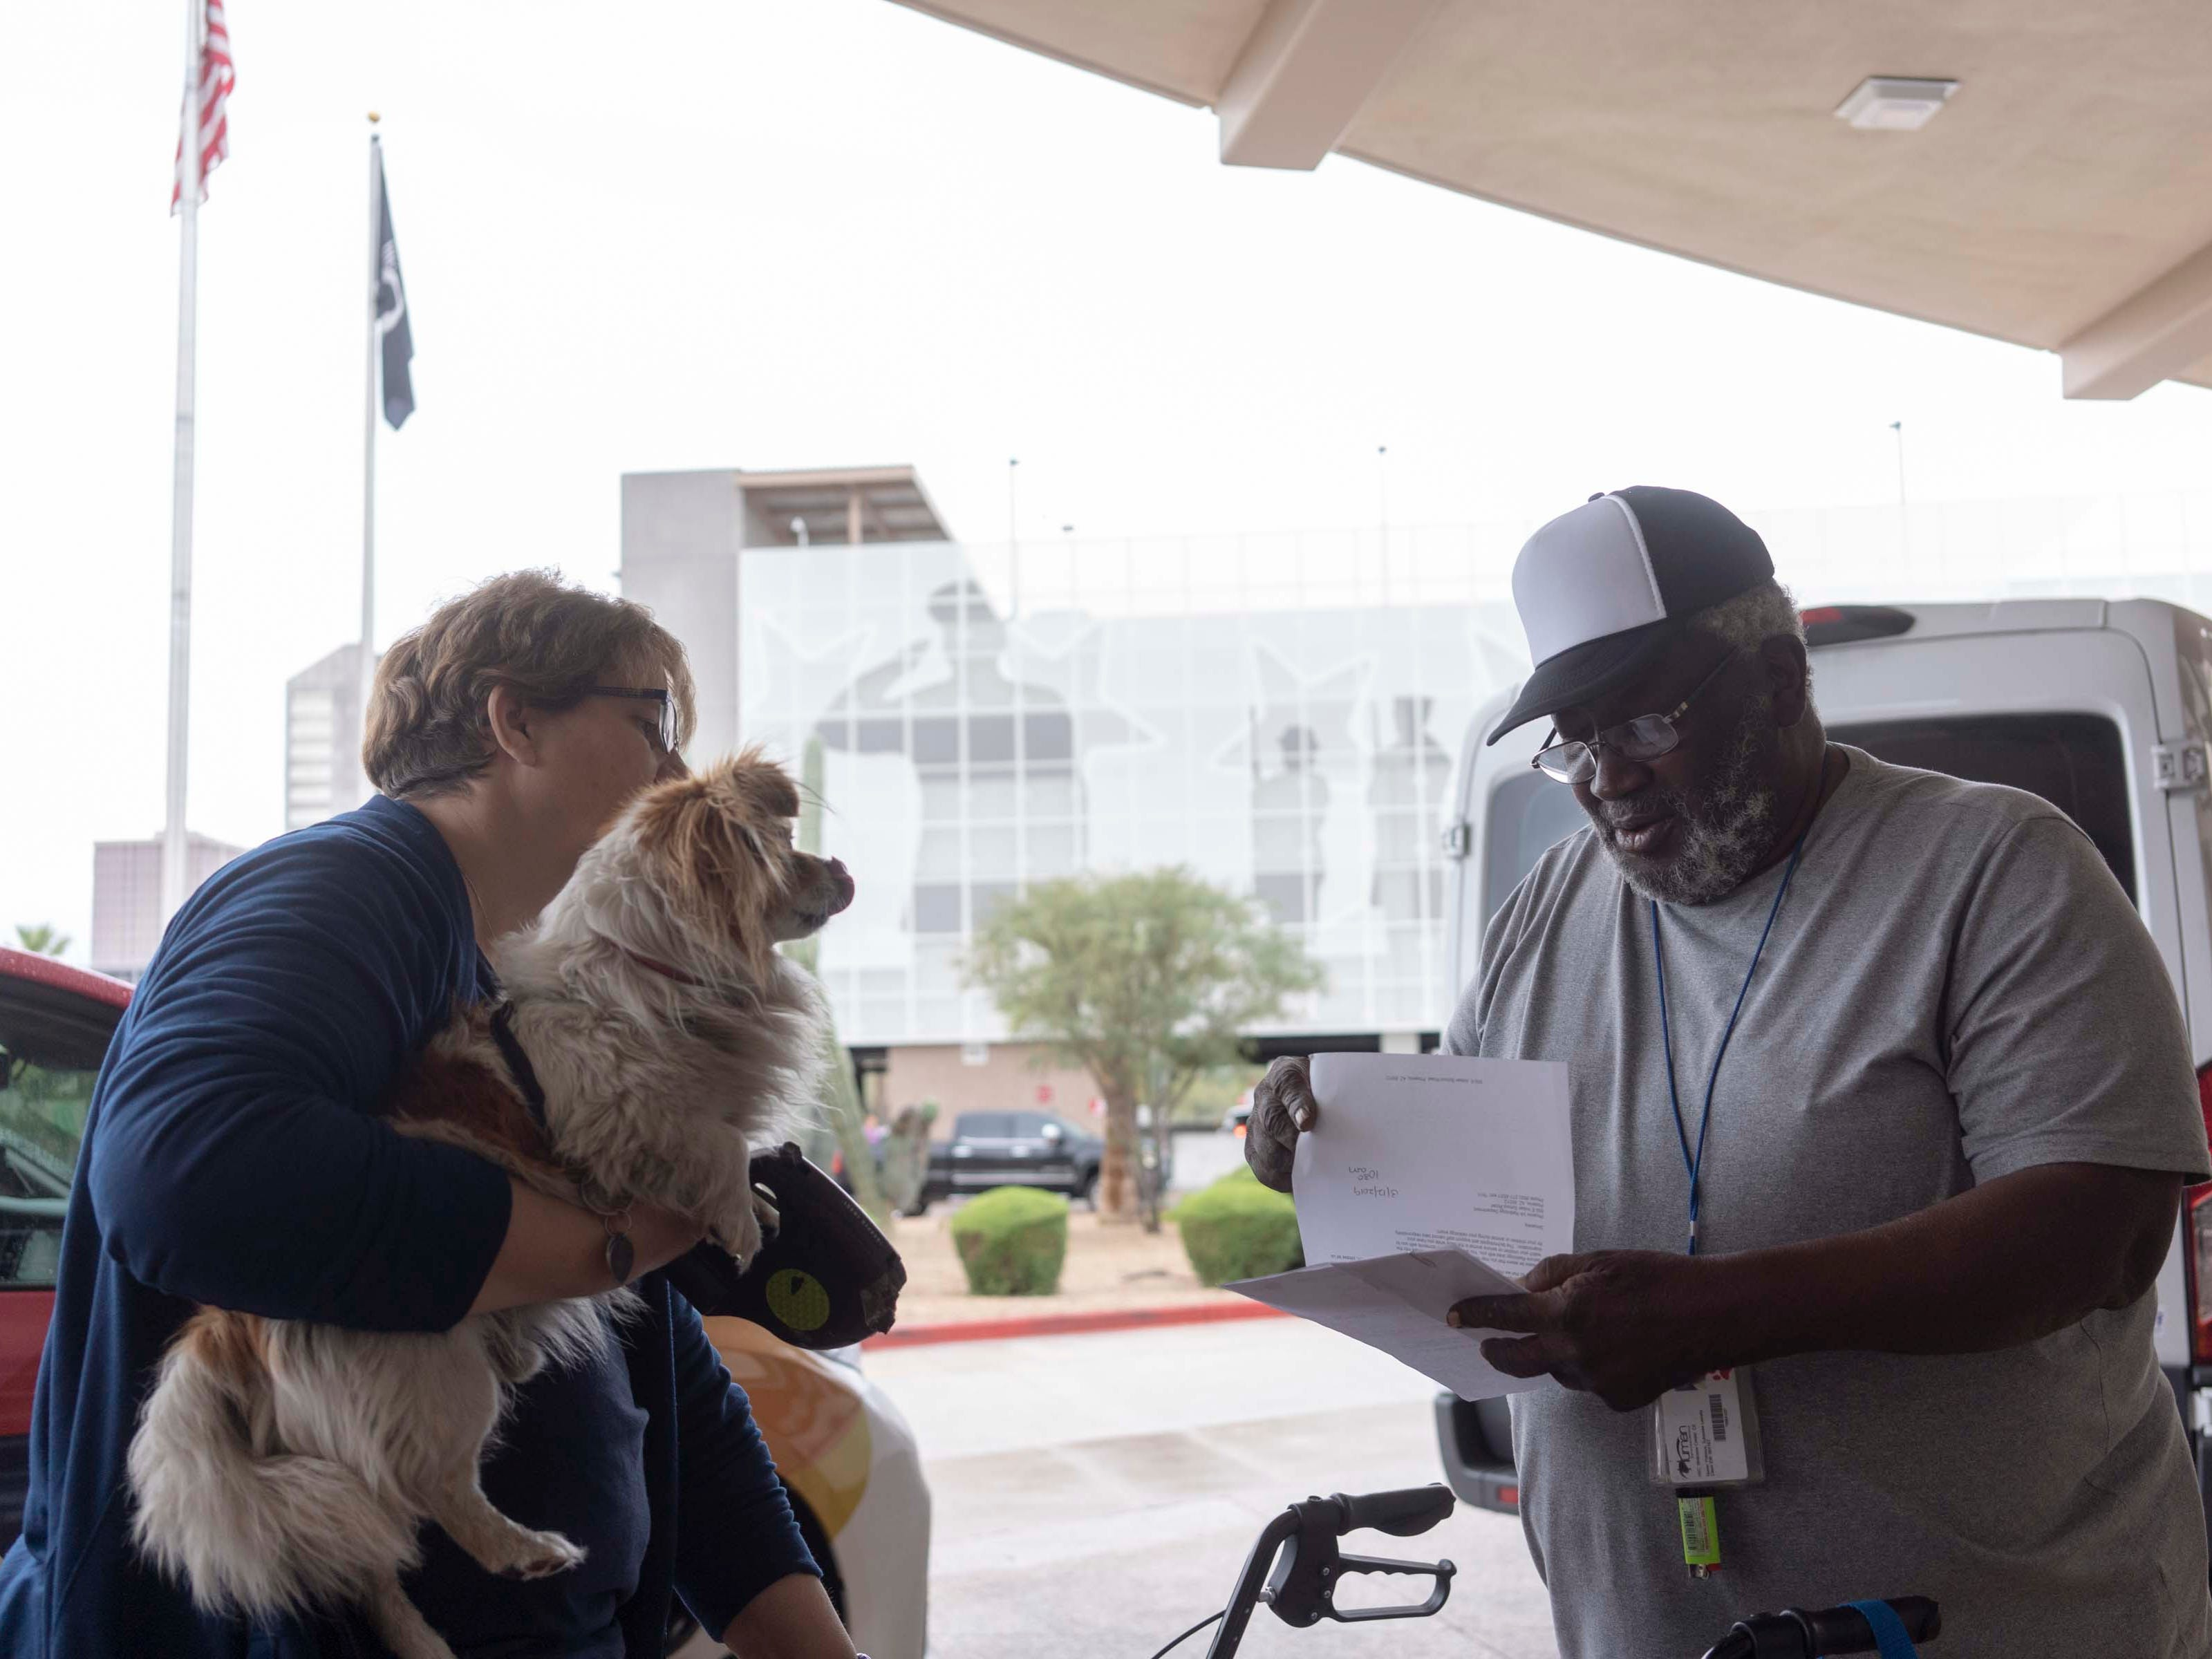 Michelle Detrick gives Army veteran Sylvestre Primous, 71, a ride to the Phoenix VA hospital before taking his service dog to the veterinarian. Detrick works for a new non-profit called Elaine that helps people experiencing homelessness get to and from medical appointments.